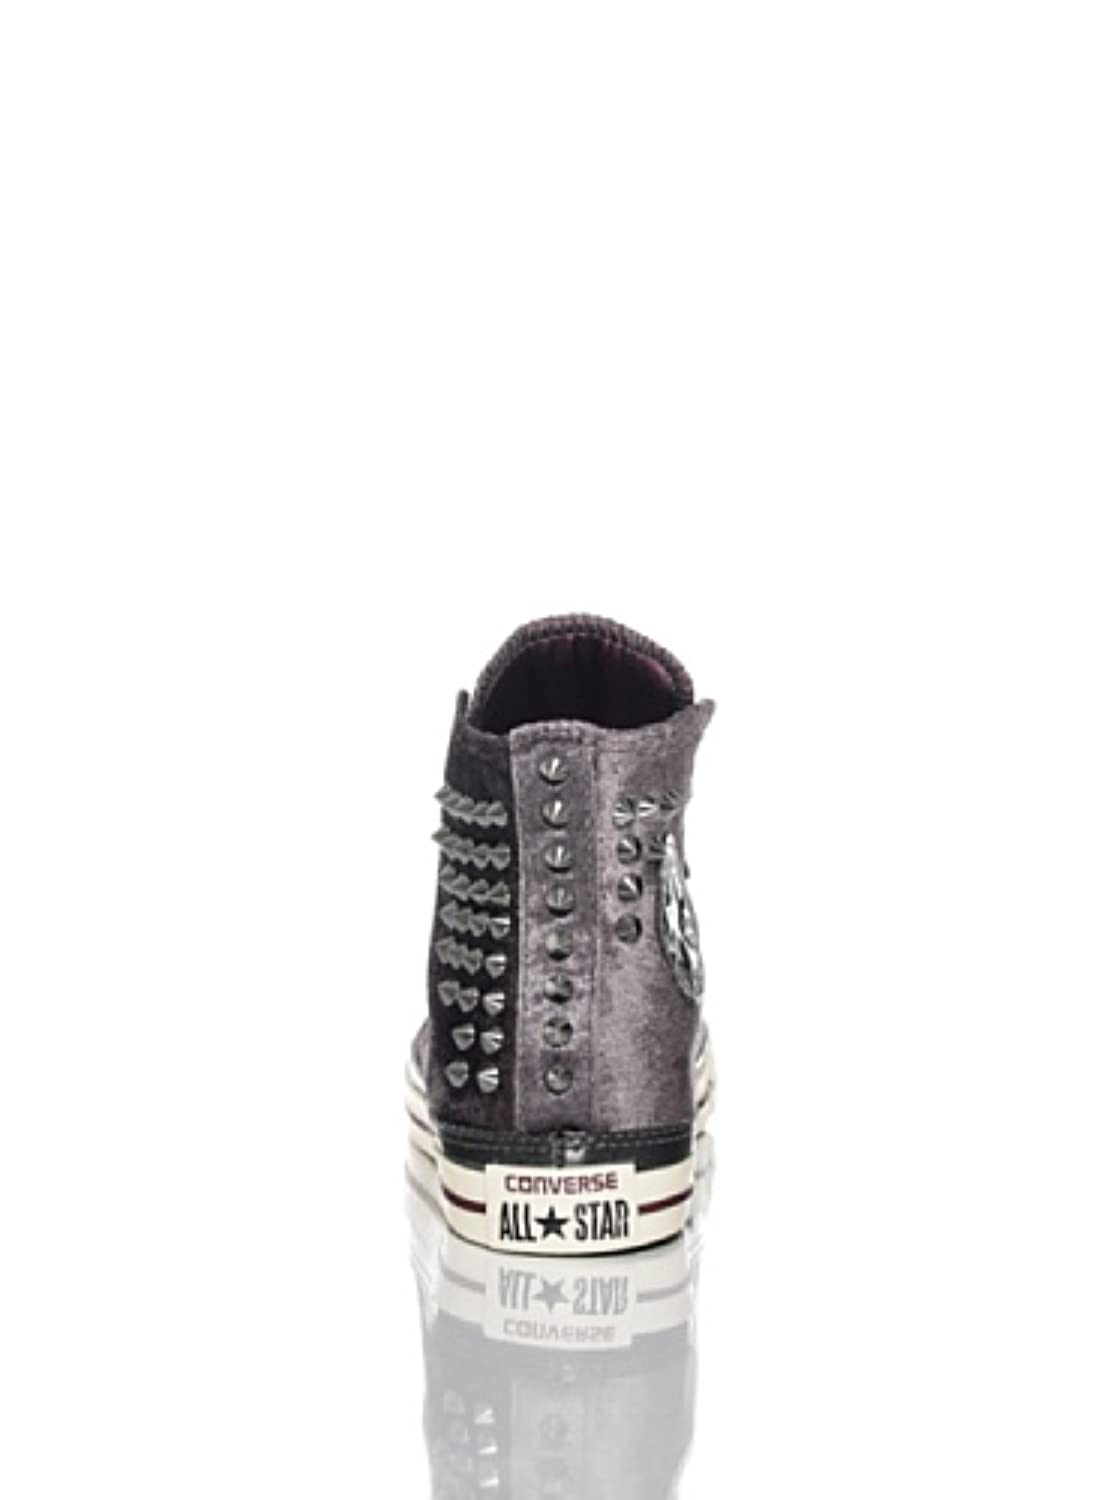 c182354dcf27 ... Converse Unisex Chuck Taylor All Star Hi Velvet Stud Spike Shoes Grey  Size 7 ...